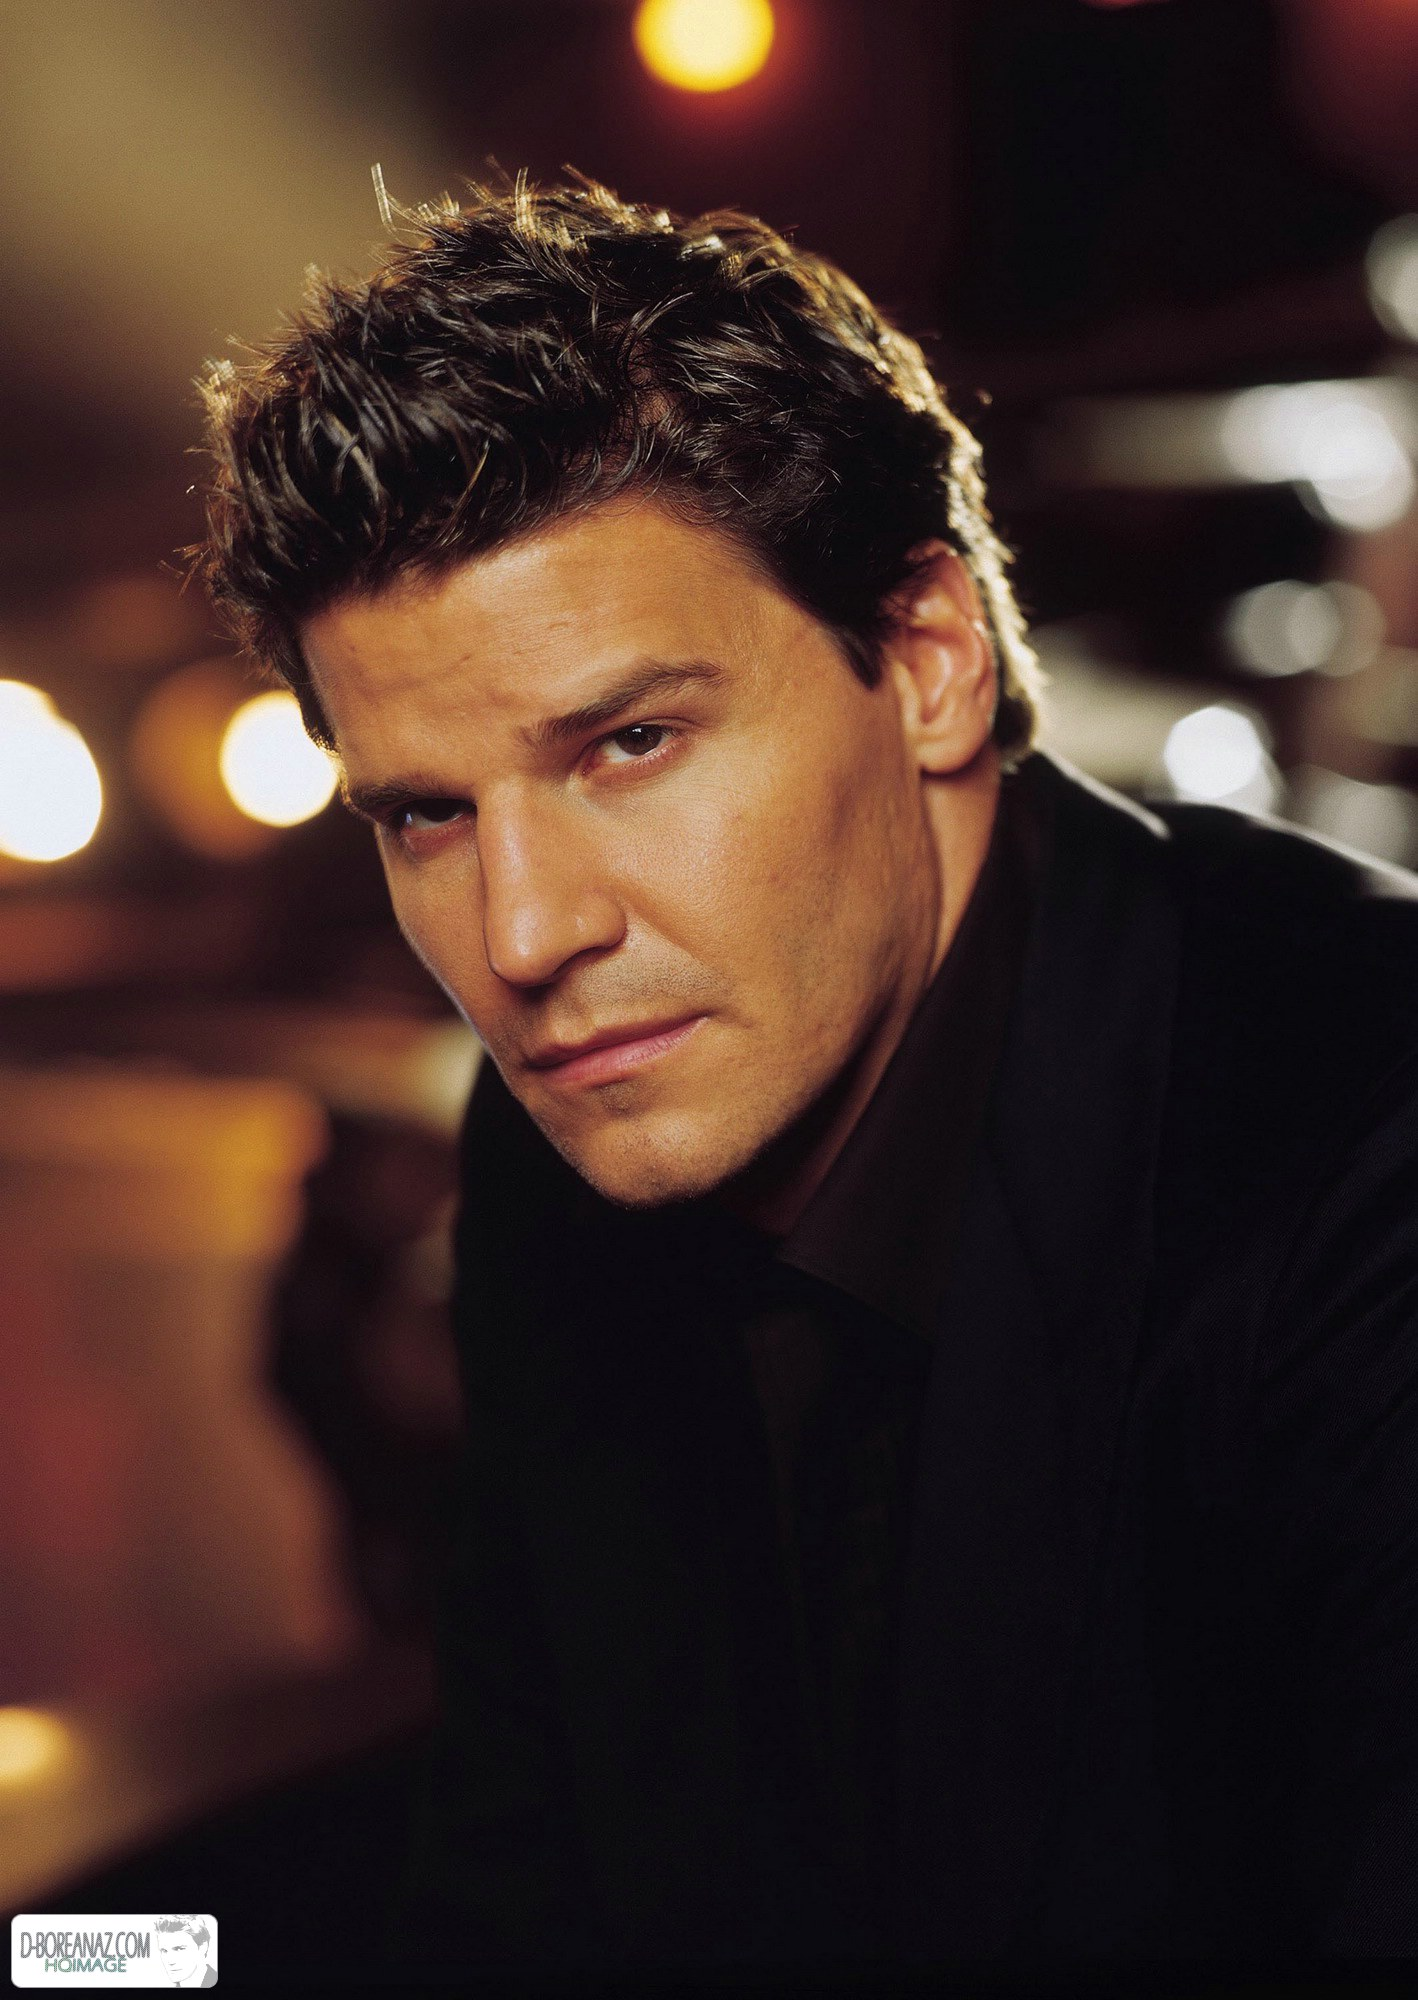 david boreanaz angel season 1 - photo #40